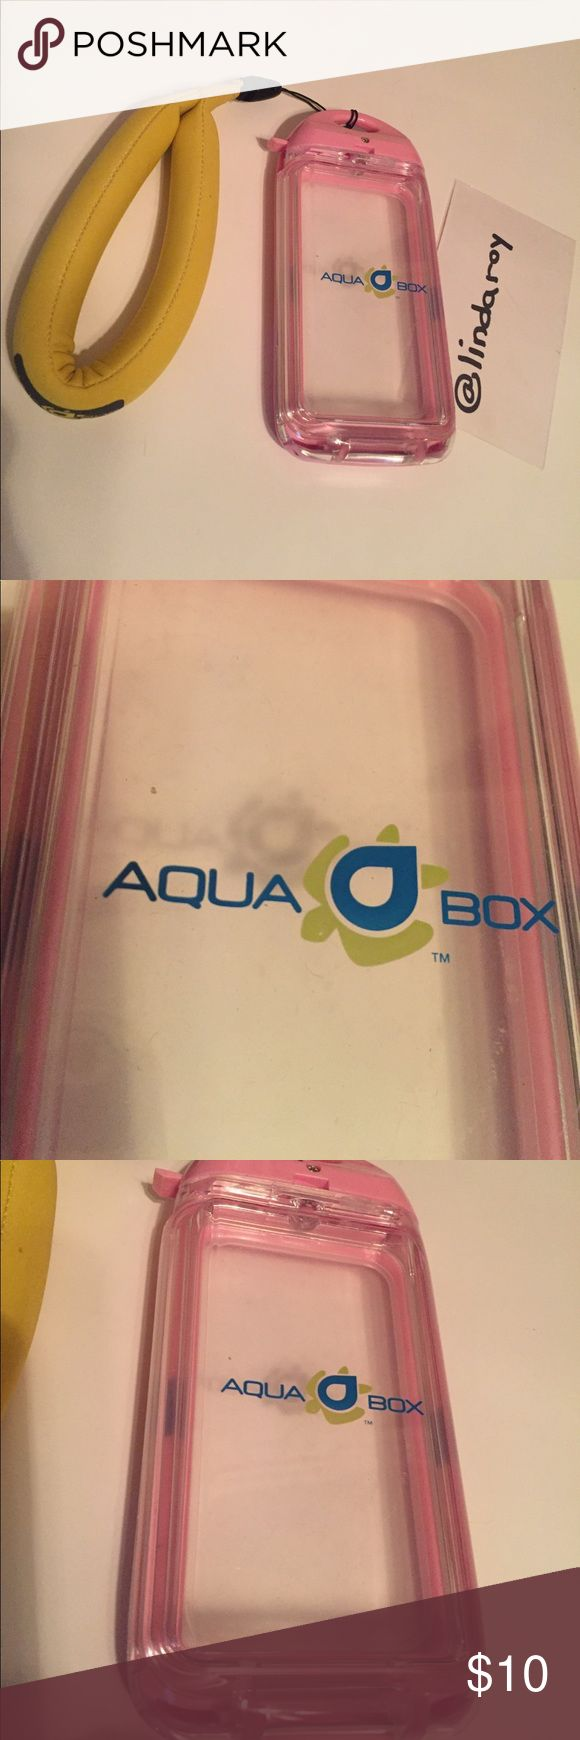 Aqua Box Waterproof Smartphone Case with Hane Aqua Box Smartphone Waterproof Case with foam handle.   This is perfect for diving and snorkeling.  Hard outer shell for shock absorption. Fully interactive transparent silicone membrane allows full texting capabilities, make and take phone calls, listen to music, take photos/videos & use your favorite app.  Floating capability with removable foam handle.  Twist & lock access.  Used once in excellent used condition.  No signs of wear.  Please…